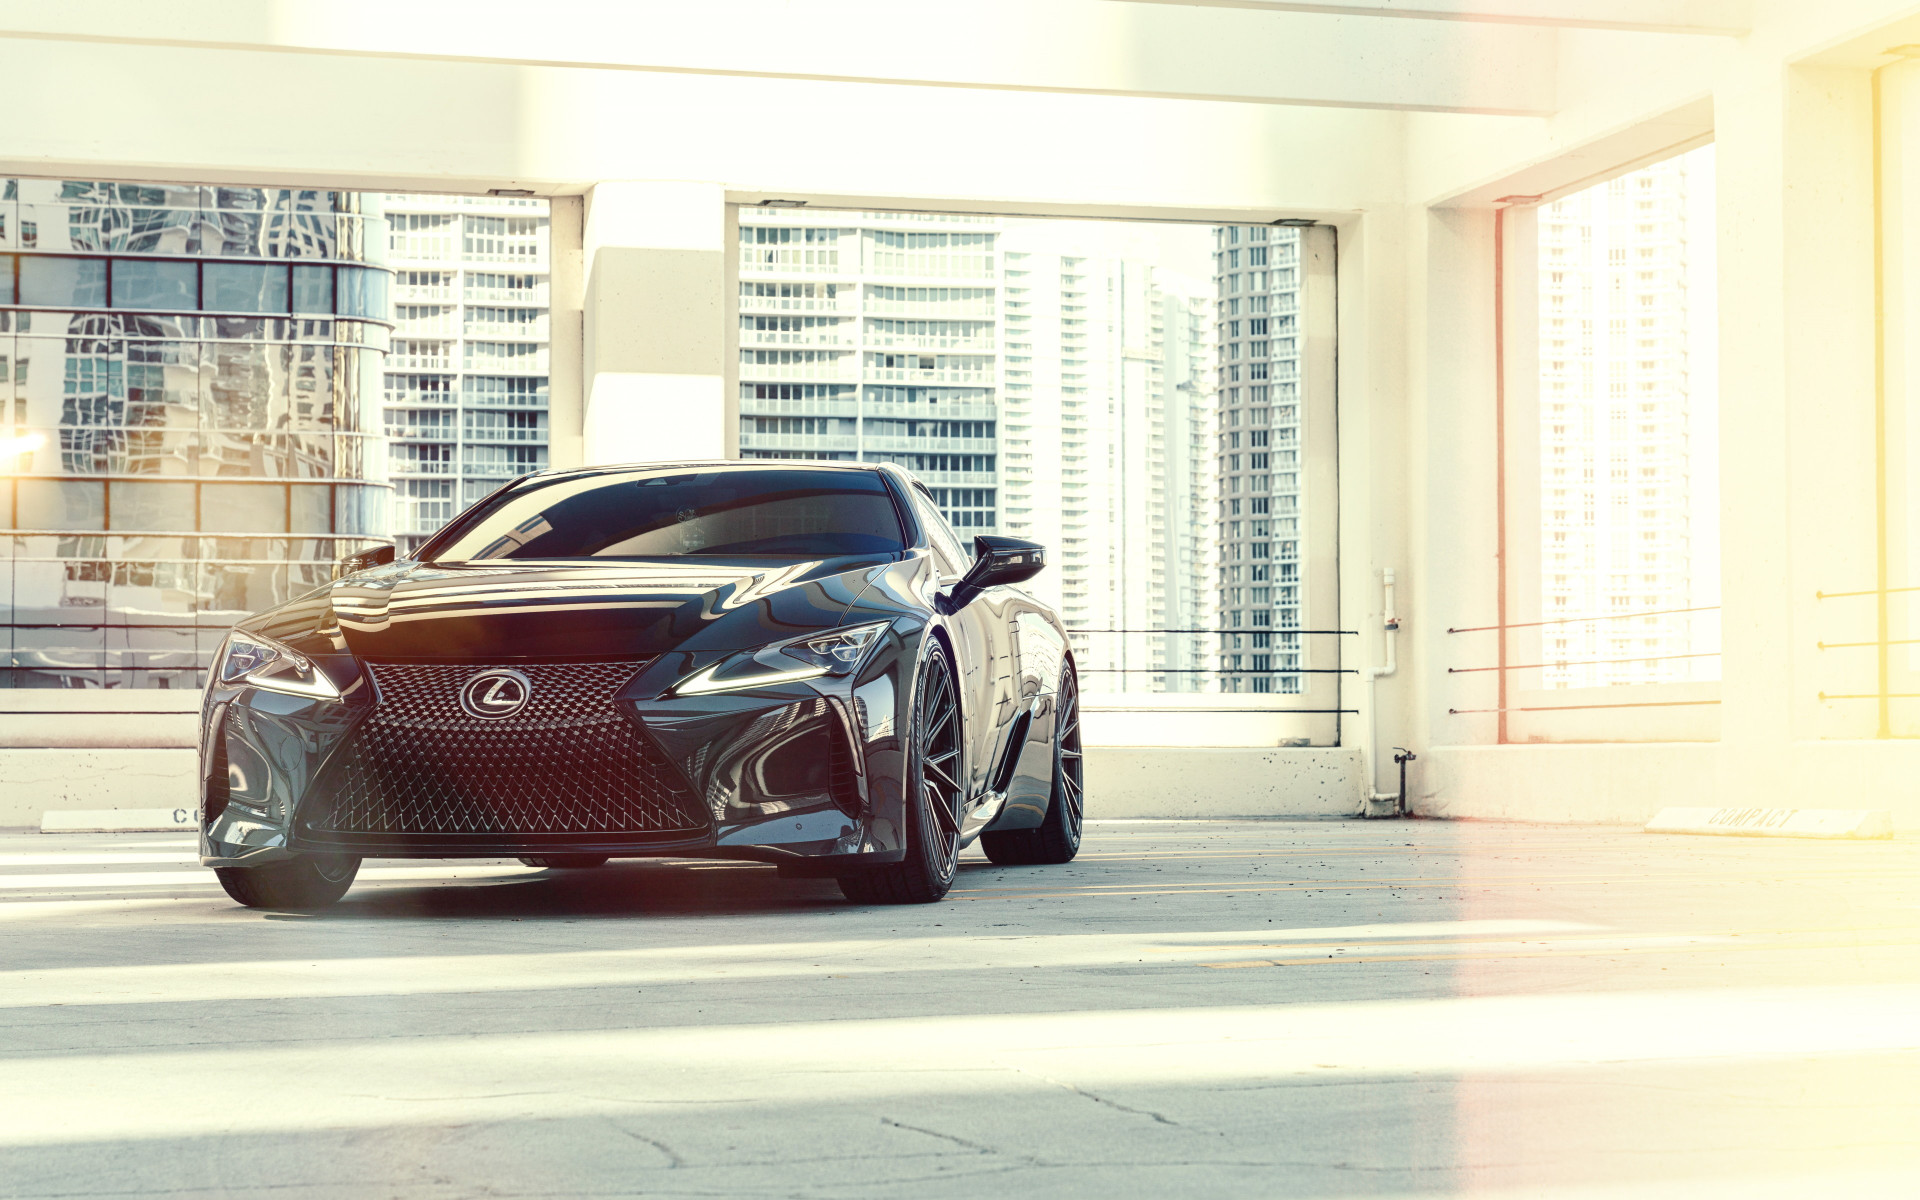 Vossen Dennis Black Lexus LC500 wallpaper 1920x1200